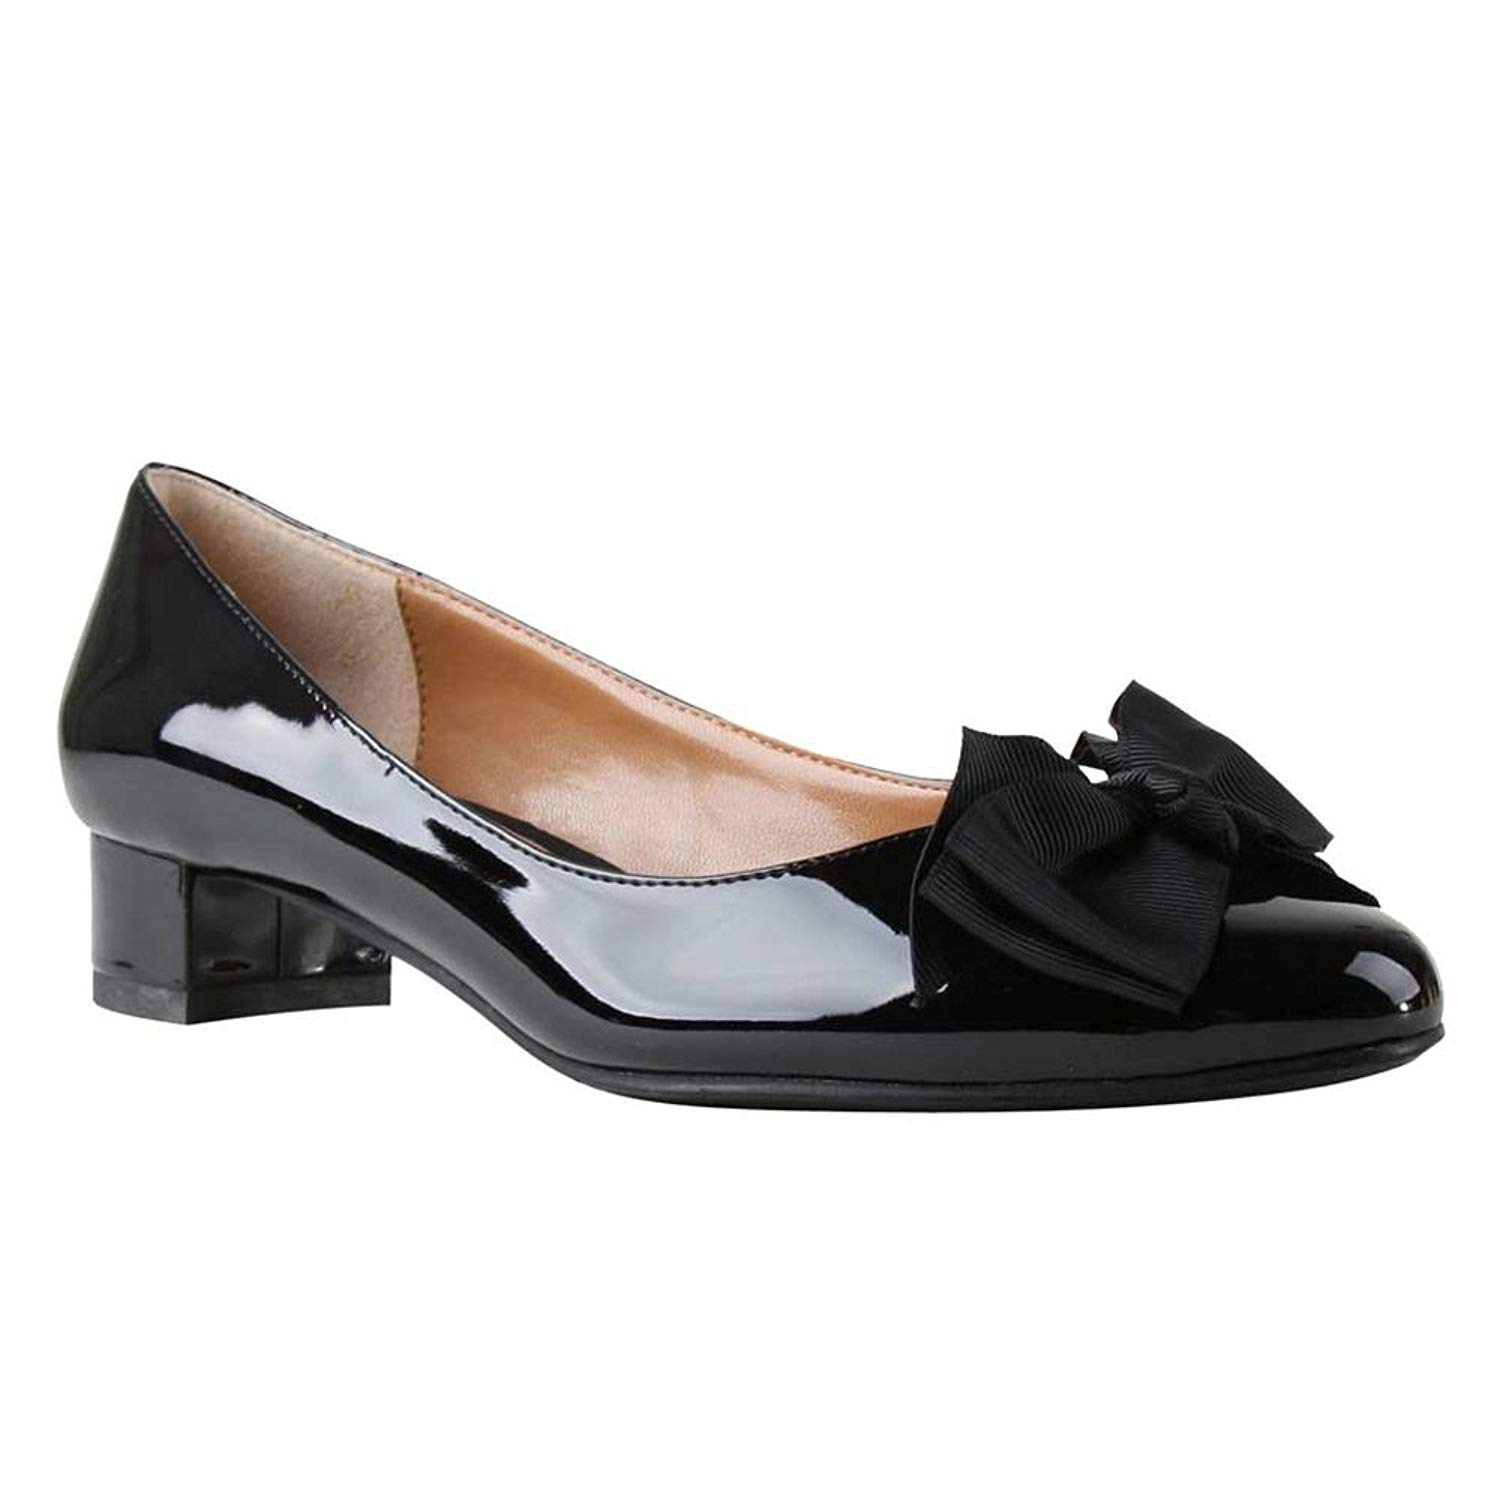 529d026b86d Details about J.Renee Womens Cameo Closed Toe Classic Pumps